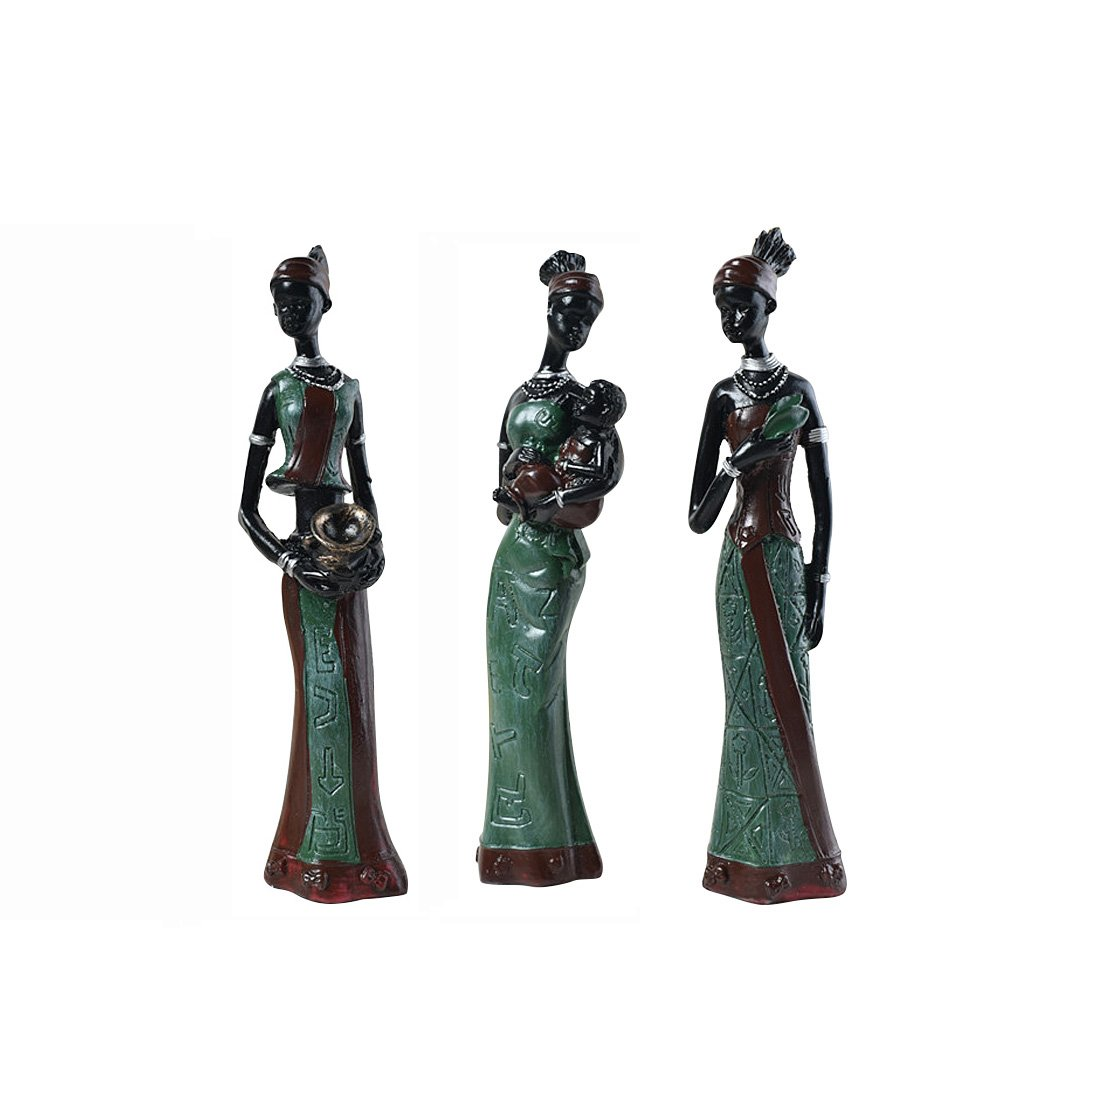 TBW African Tribal Women Collectible Figurines for Mother's Gifts,Green,Pack of 3